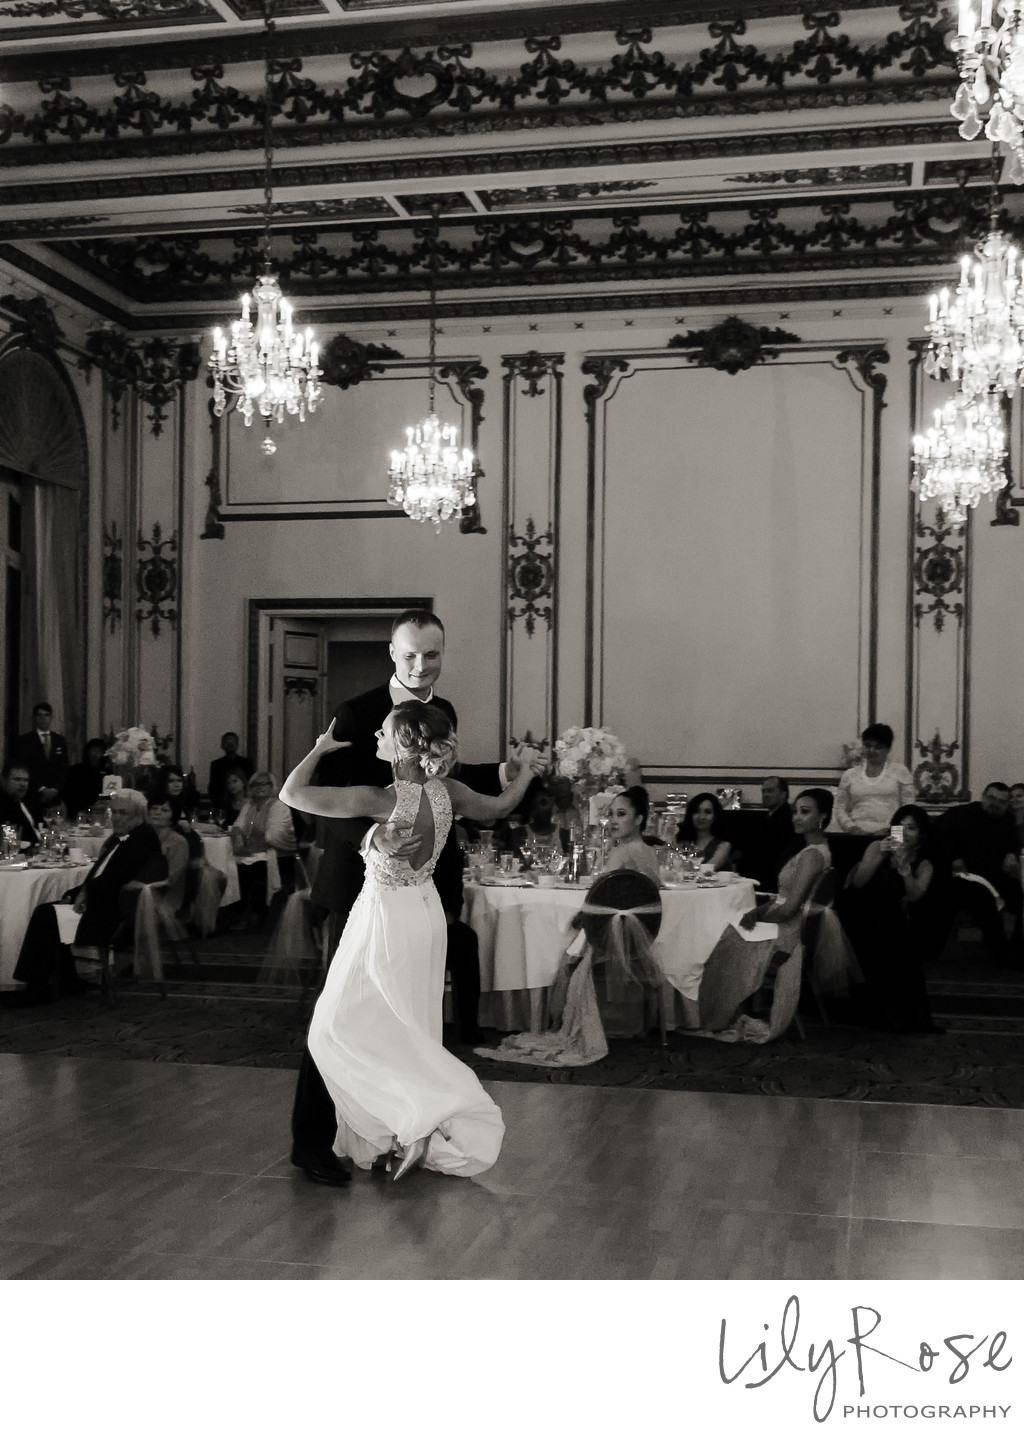 Bride and Groom First Dance Fairmont San Francisco